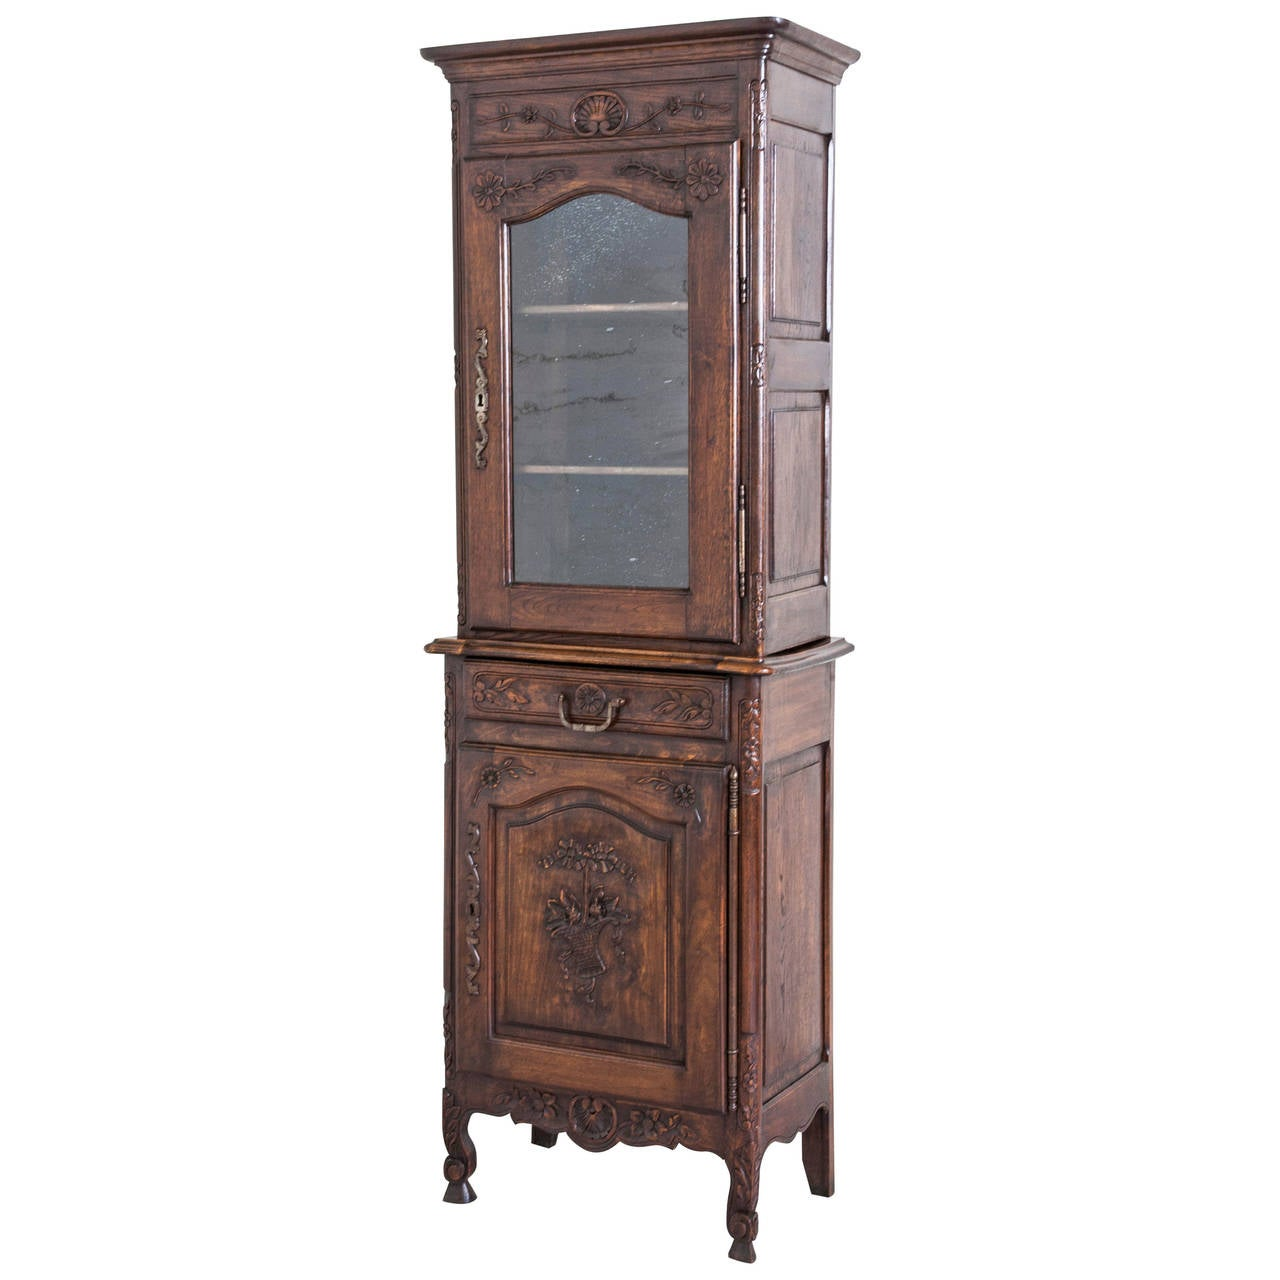 Antique French Oak Hand-Carved Louis XV Style Normandy Cabinet or Vitrine  For Sale - Antique French Oak Hand-Carved Louis XV Style Normandy Cabinet Or